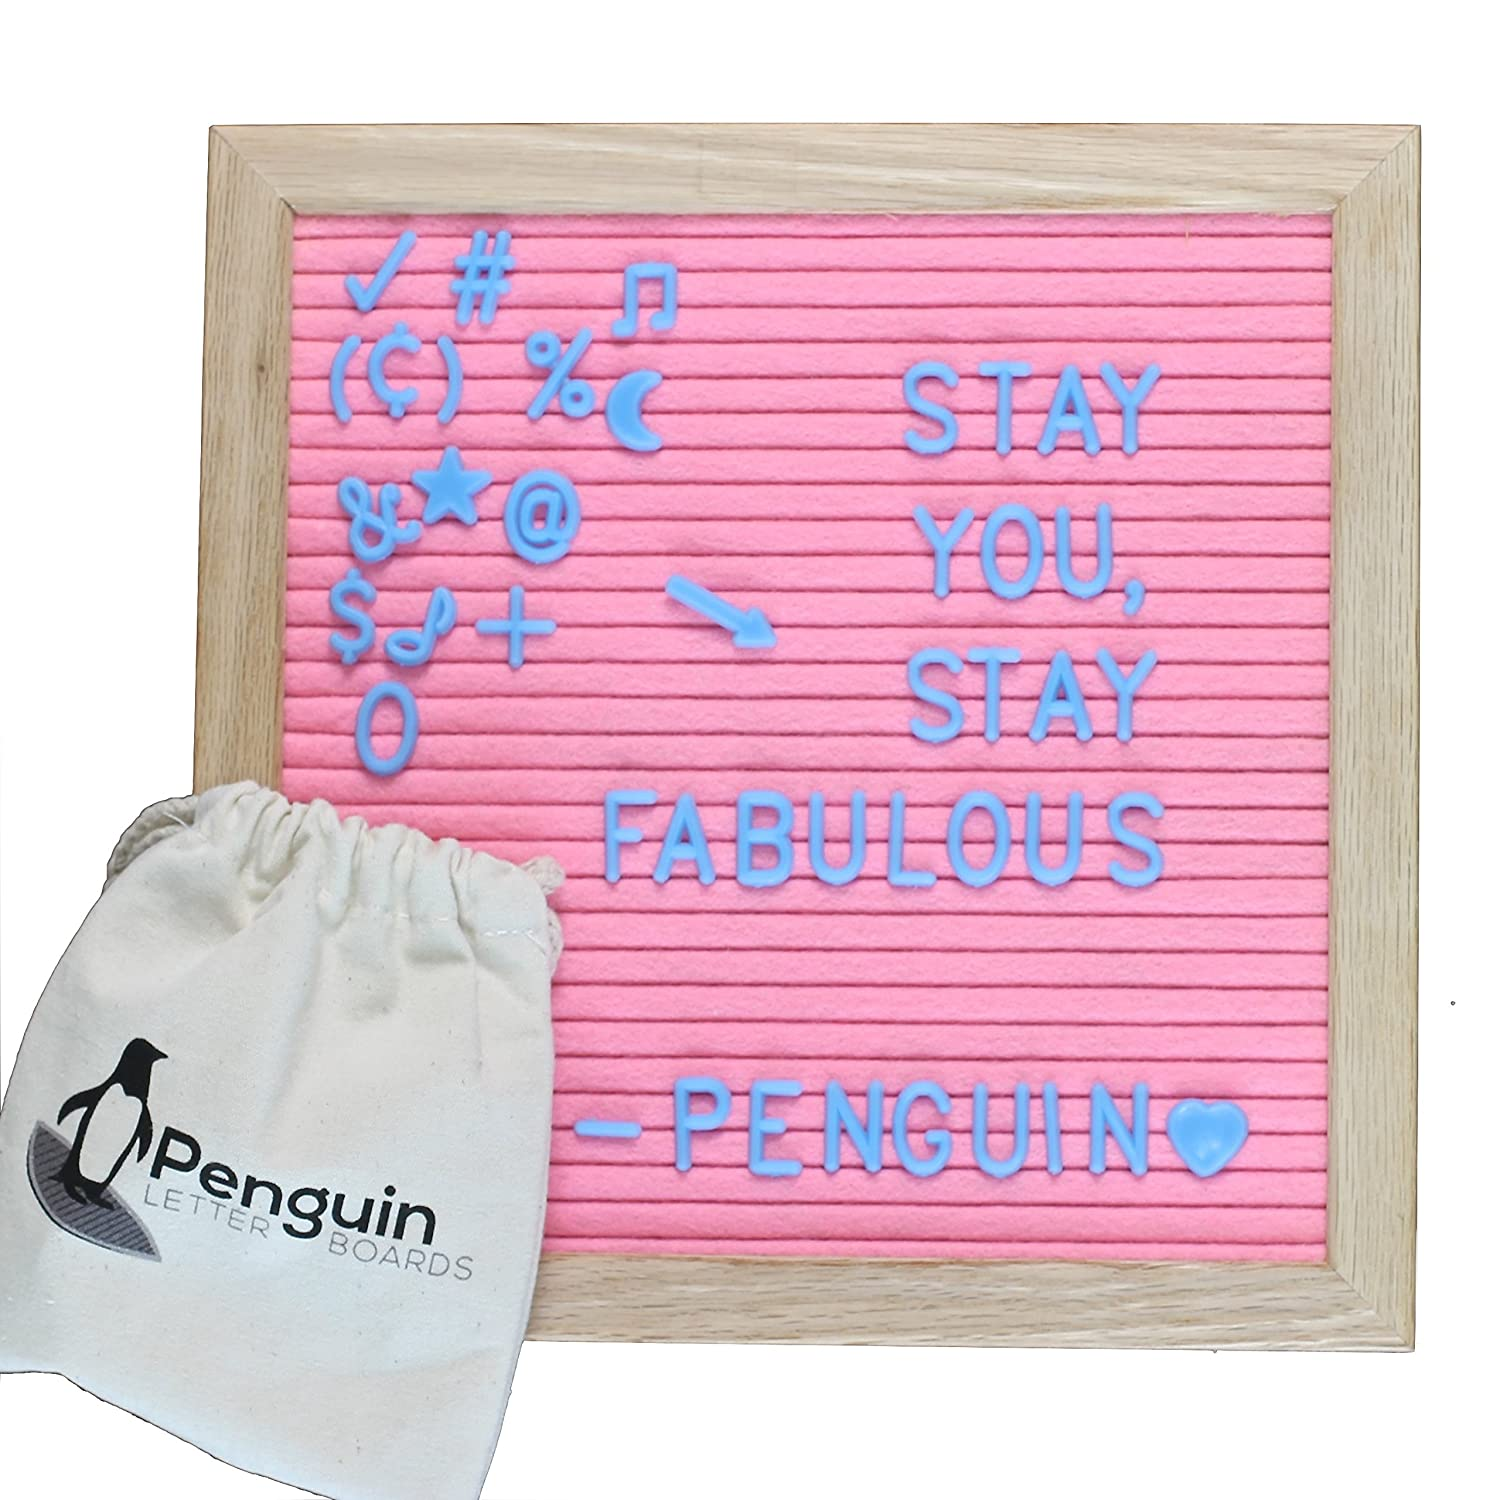 Felt Letter Board 10x10 With Letters – Felt Board With Letters / Message Board Includes 340 Felt Board Letters by Penguin Letter Boards